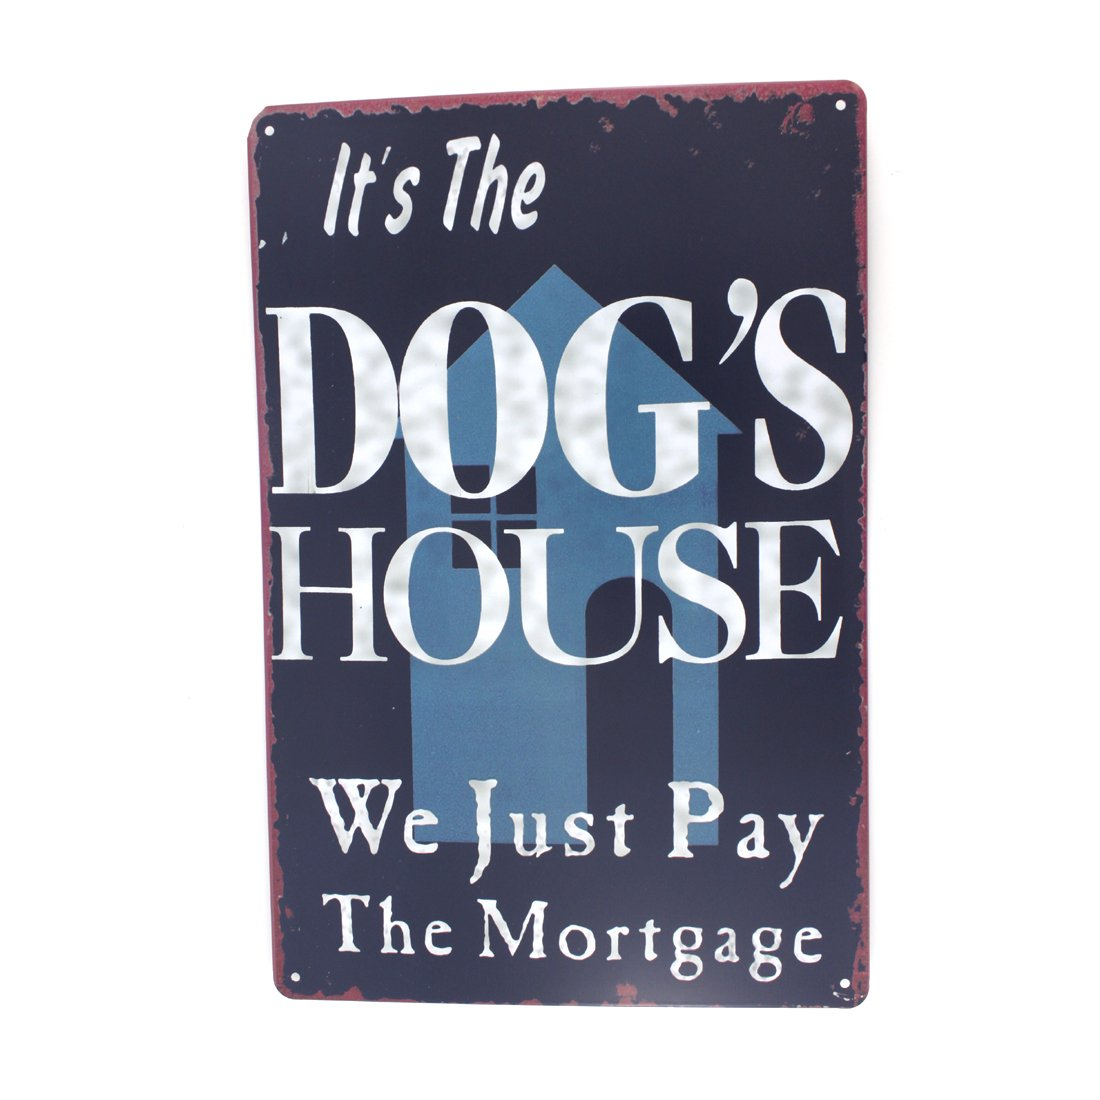 12x8 Inches Pub,bar,home Wall Decor Souvenir Hanging Metal Tin Sign Plate Plaque (ITS DOGS HOUSE)